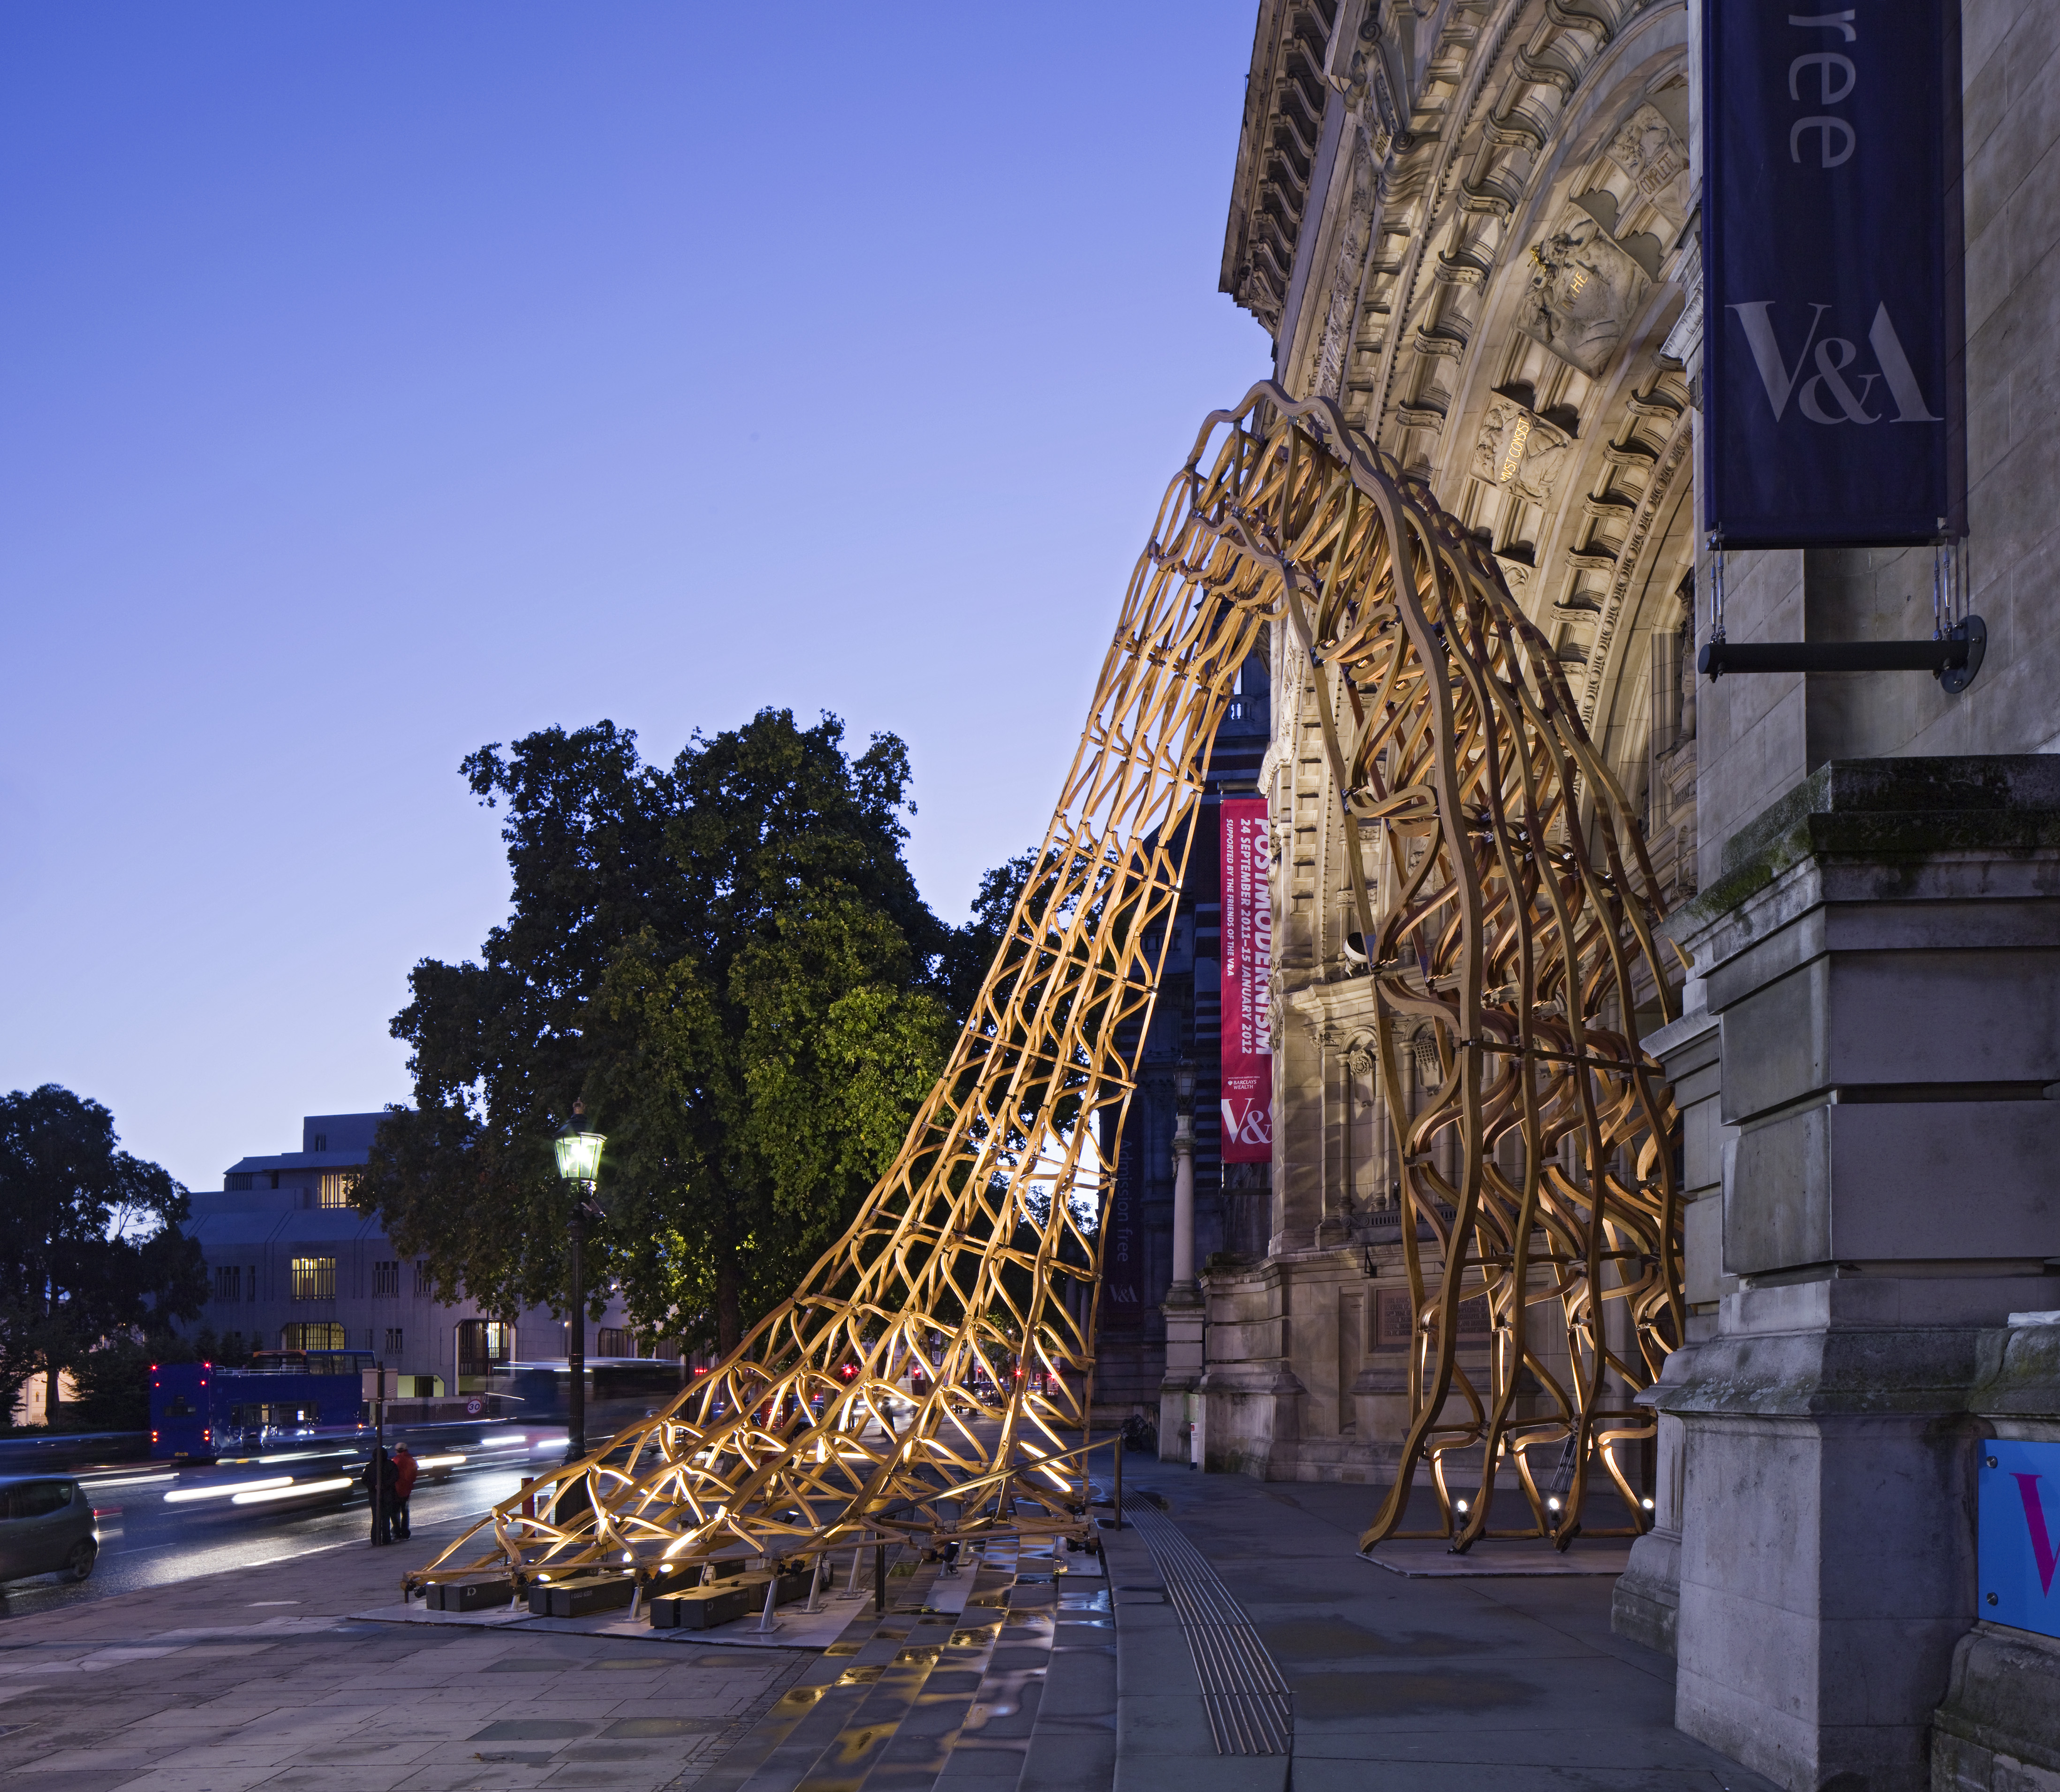 Timber Wave echoes the arched form and ornate features of the Cromwell Road entrance to V&A.